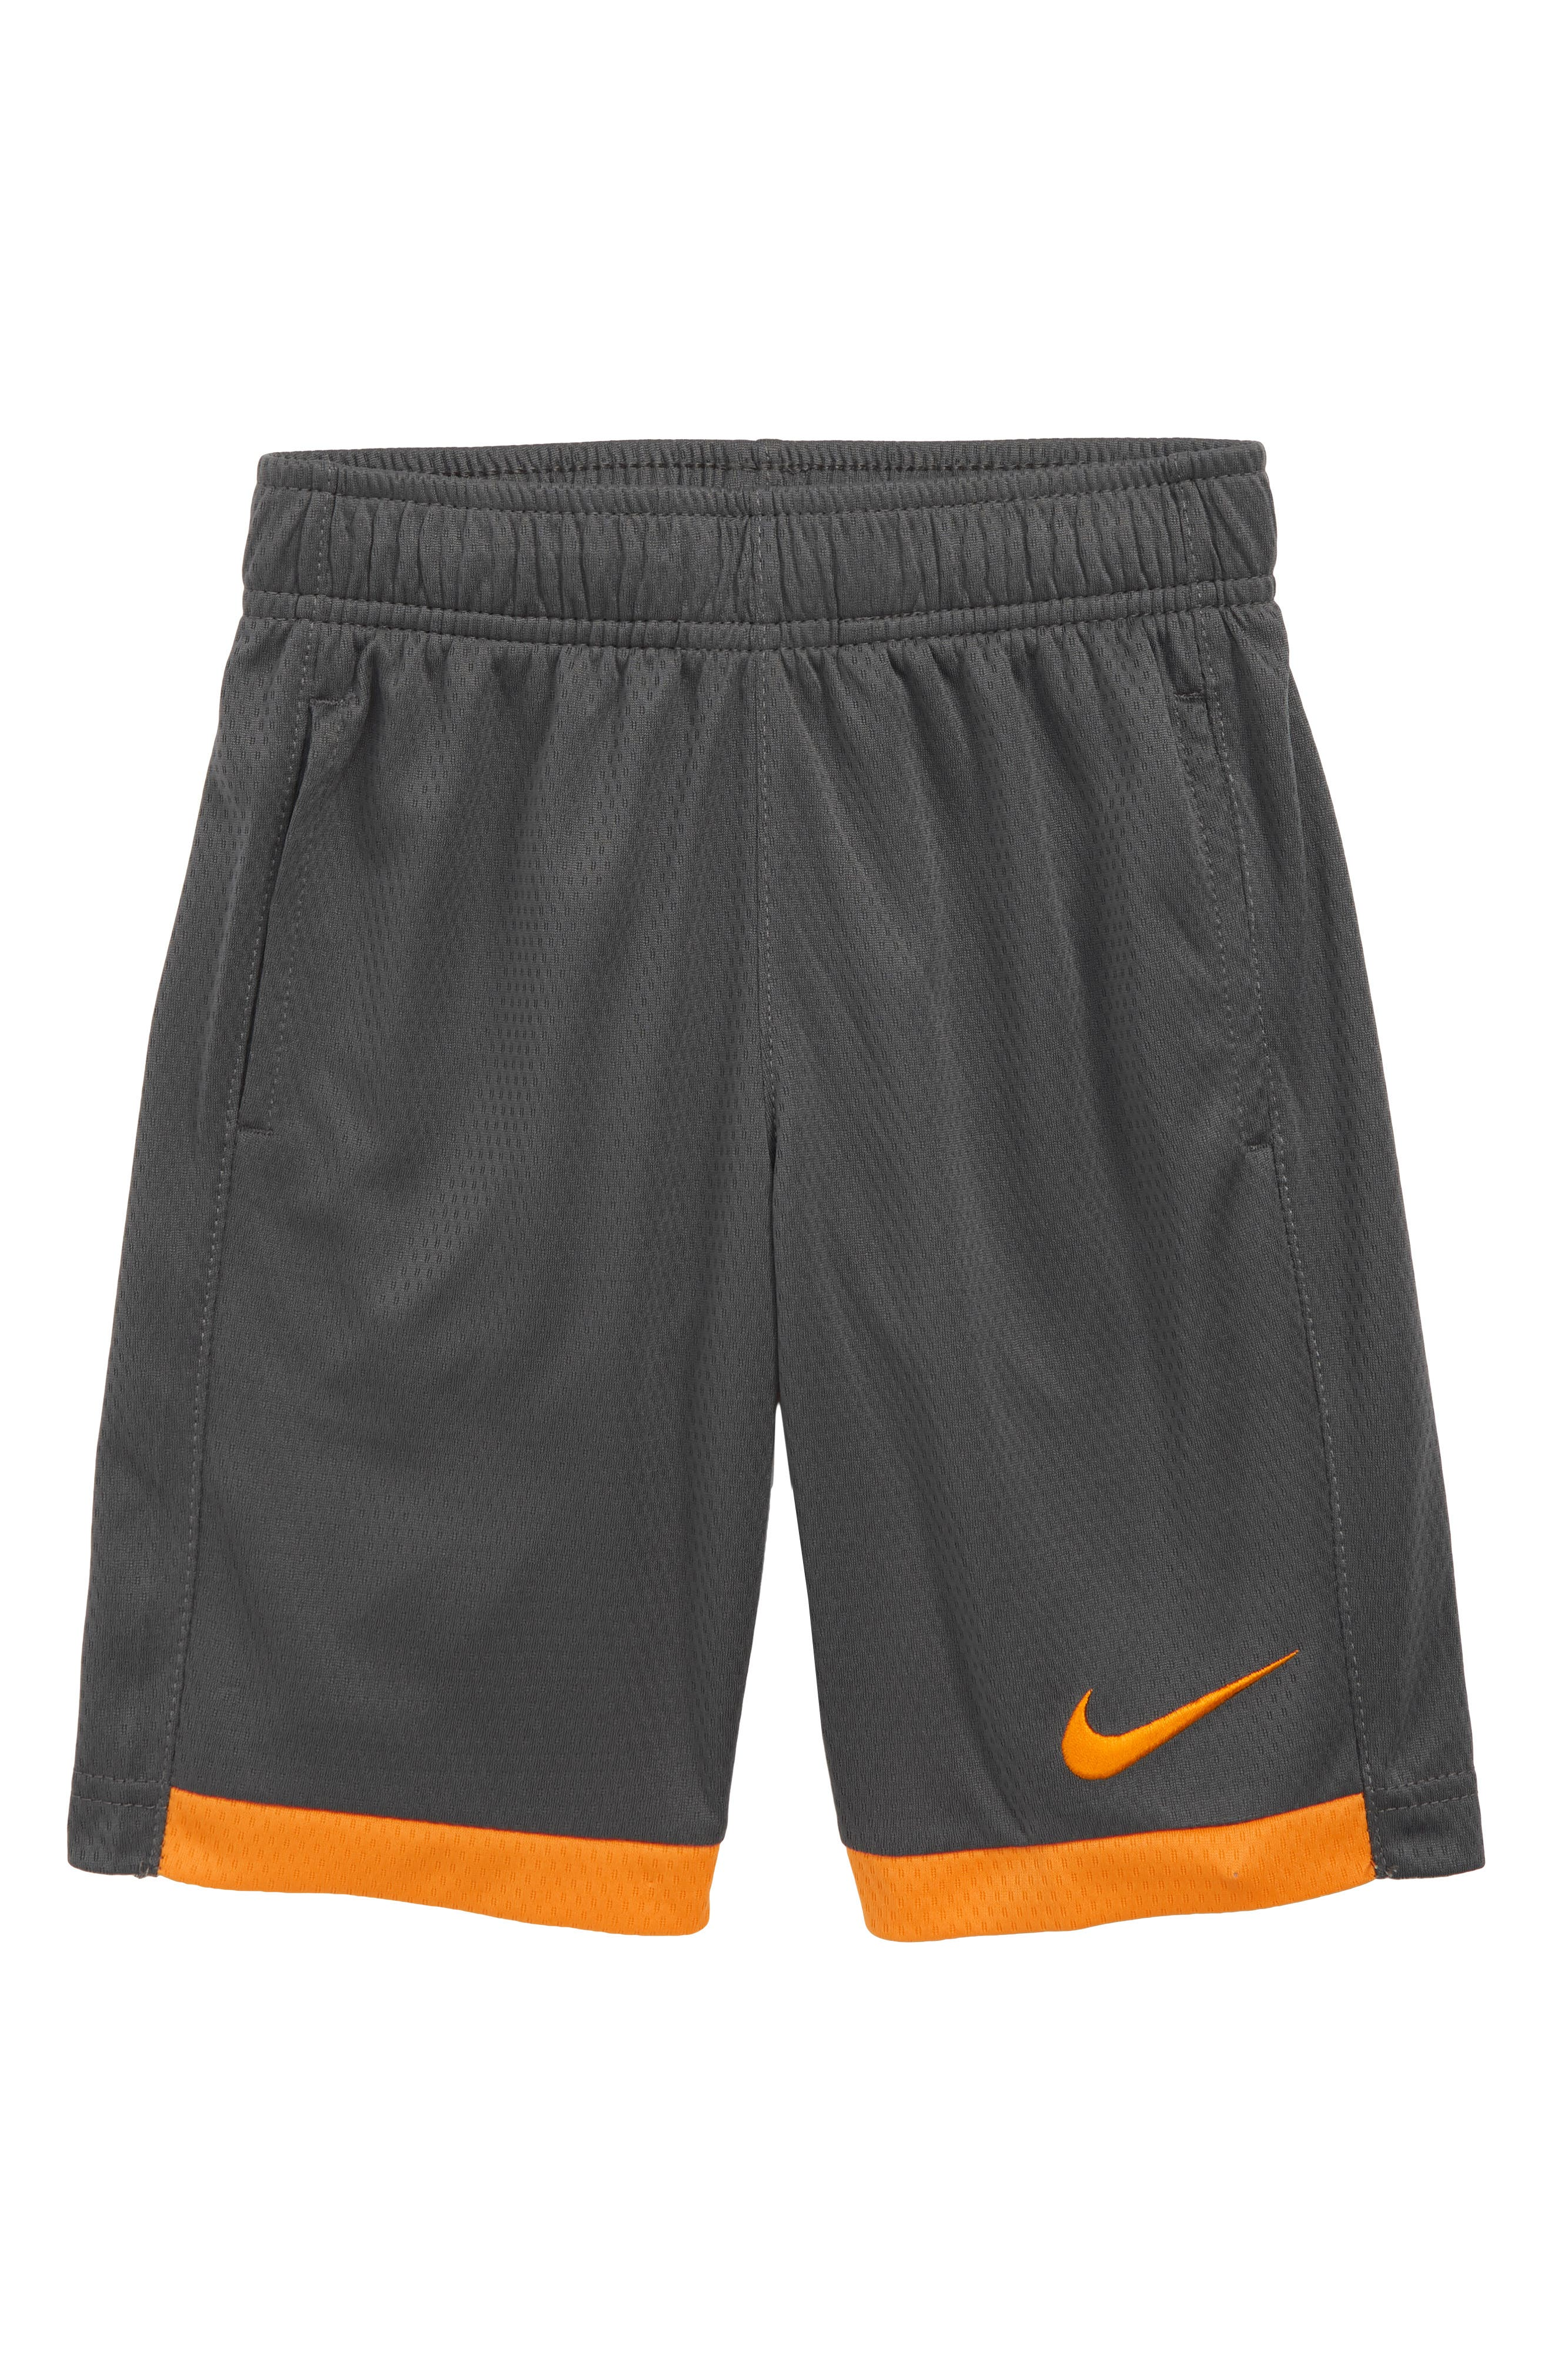 Boys Nike Dry Trophy Shorts Size 6  Grey